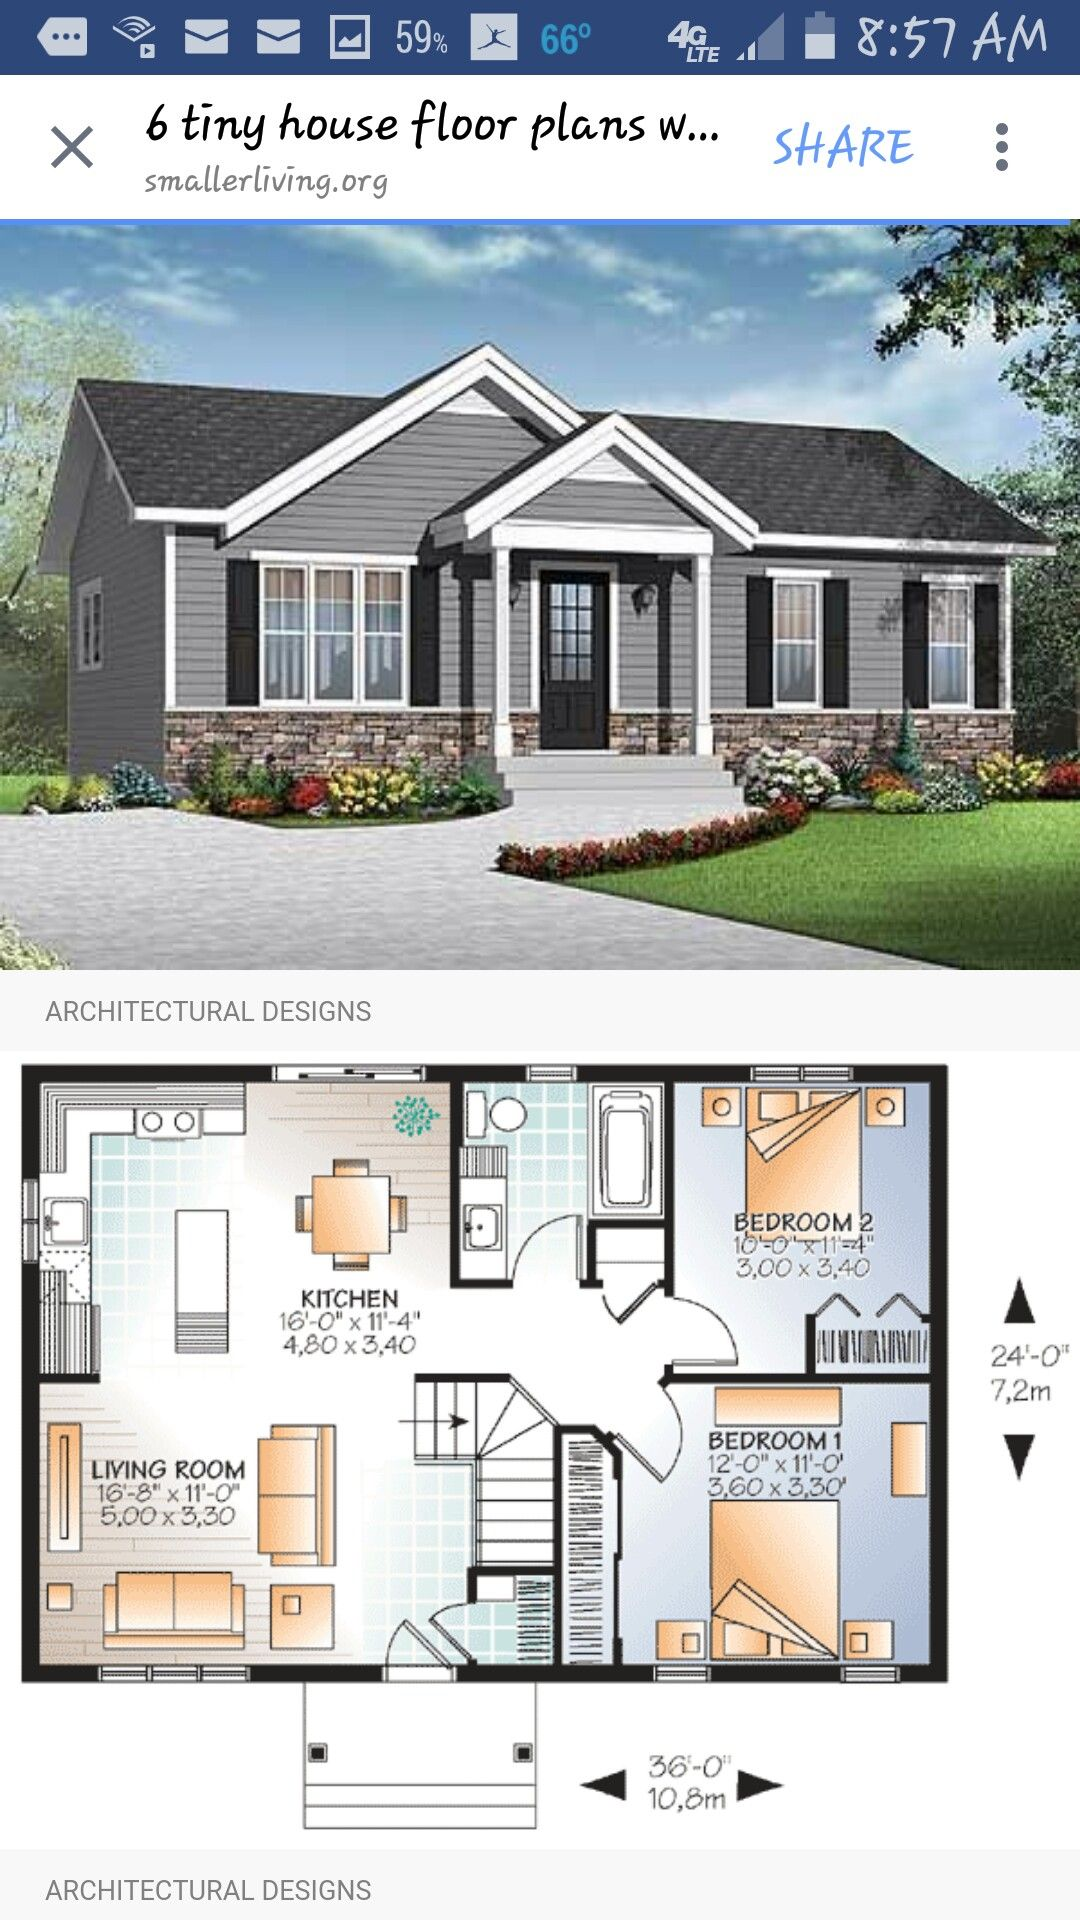 Pin By Taryn Sgrignoli On Sims Sims House Plans Sims House